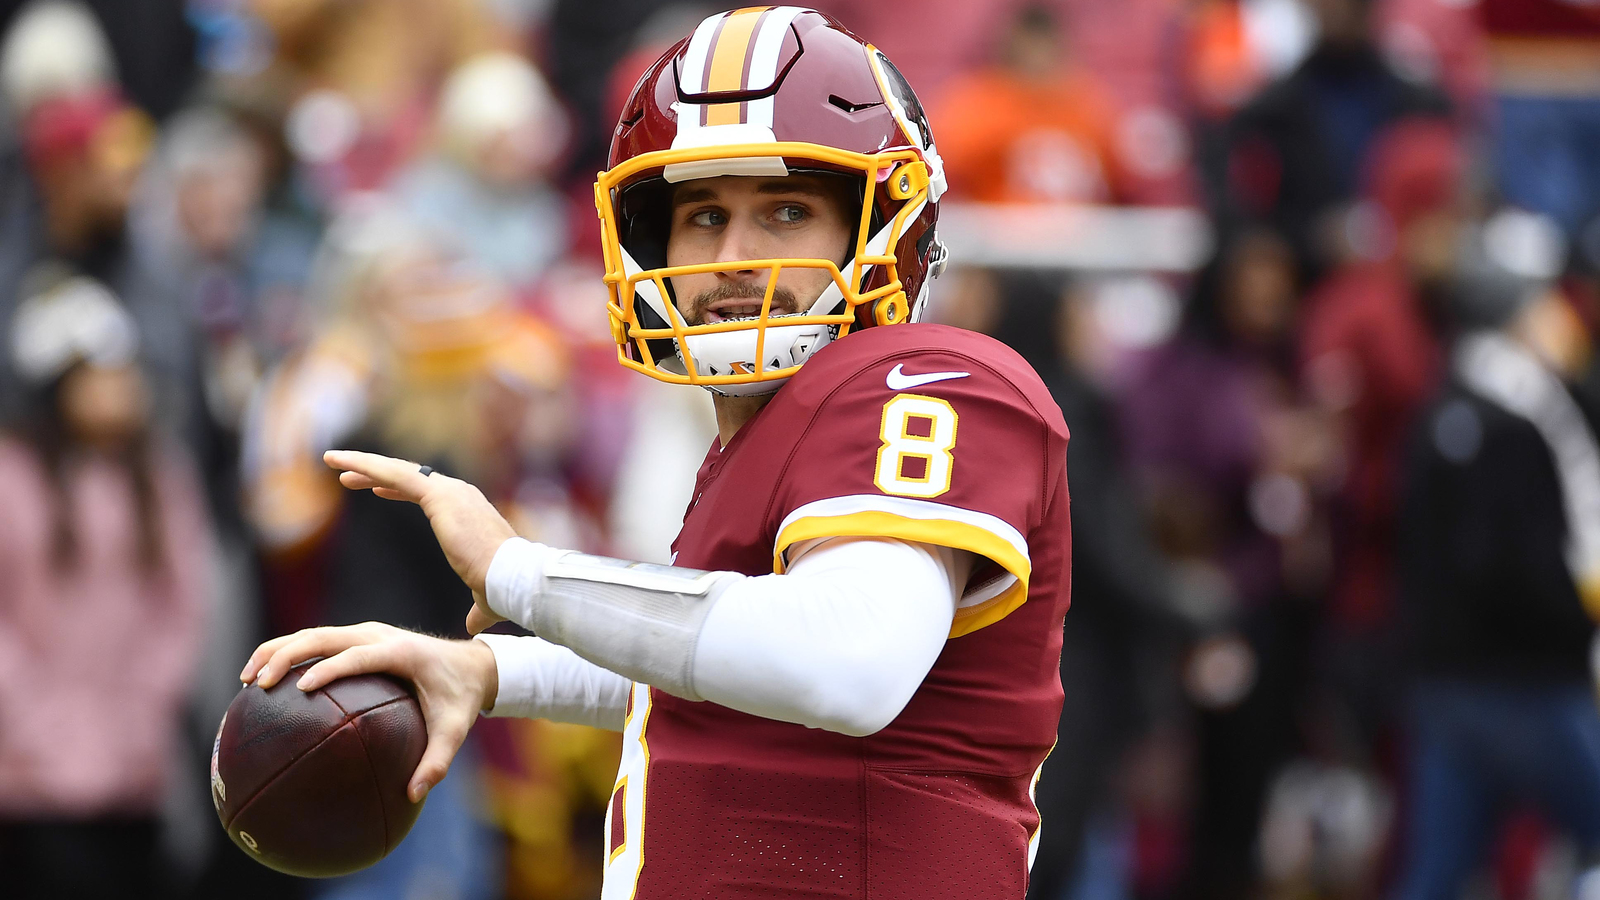 Kirk Cousins leads Redskins past Broncos with 3 TD passes